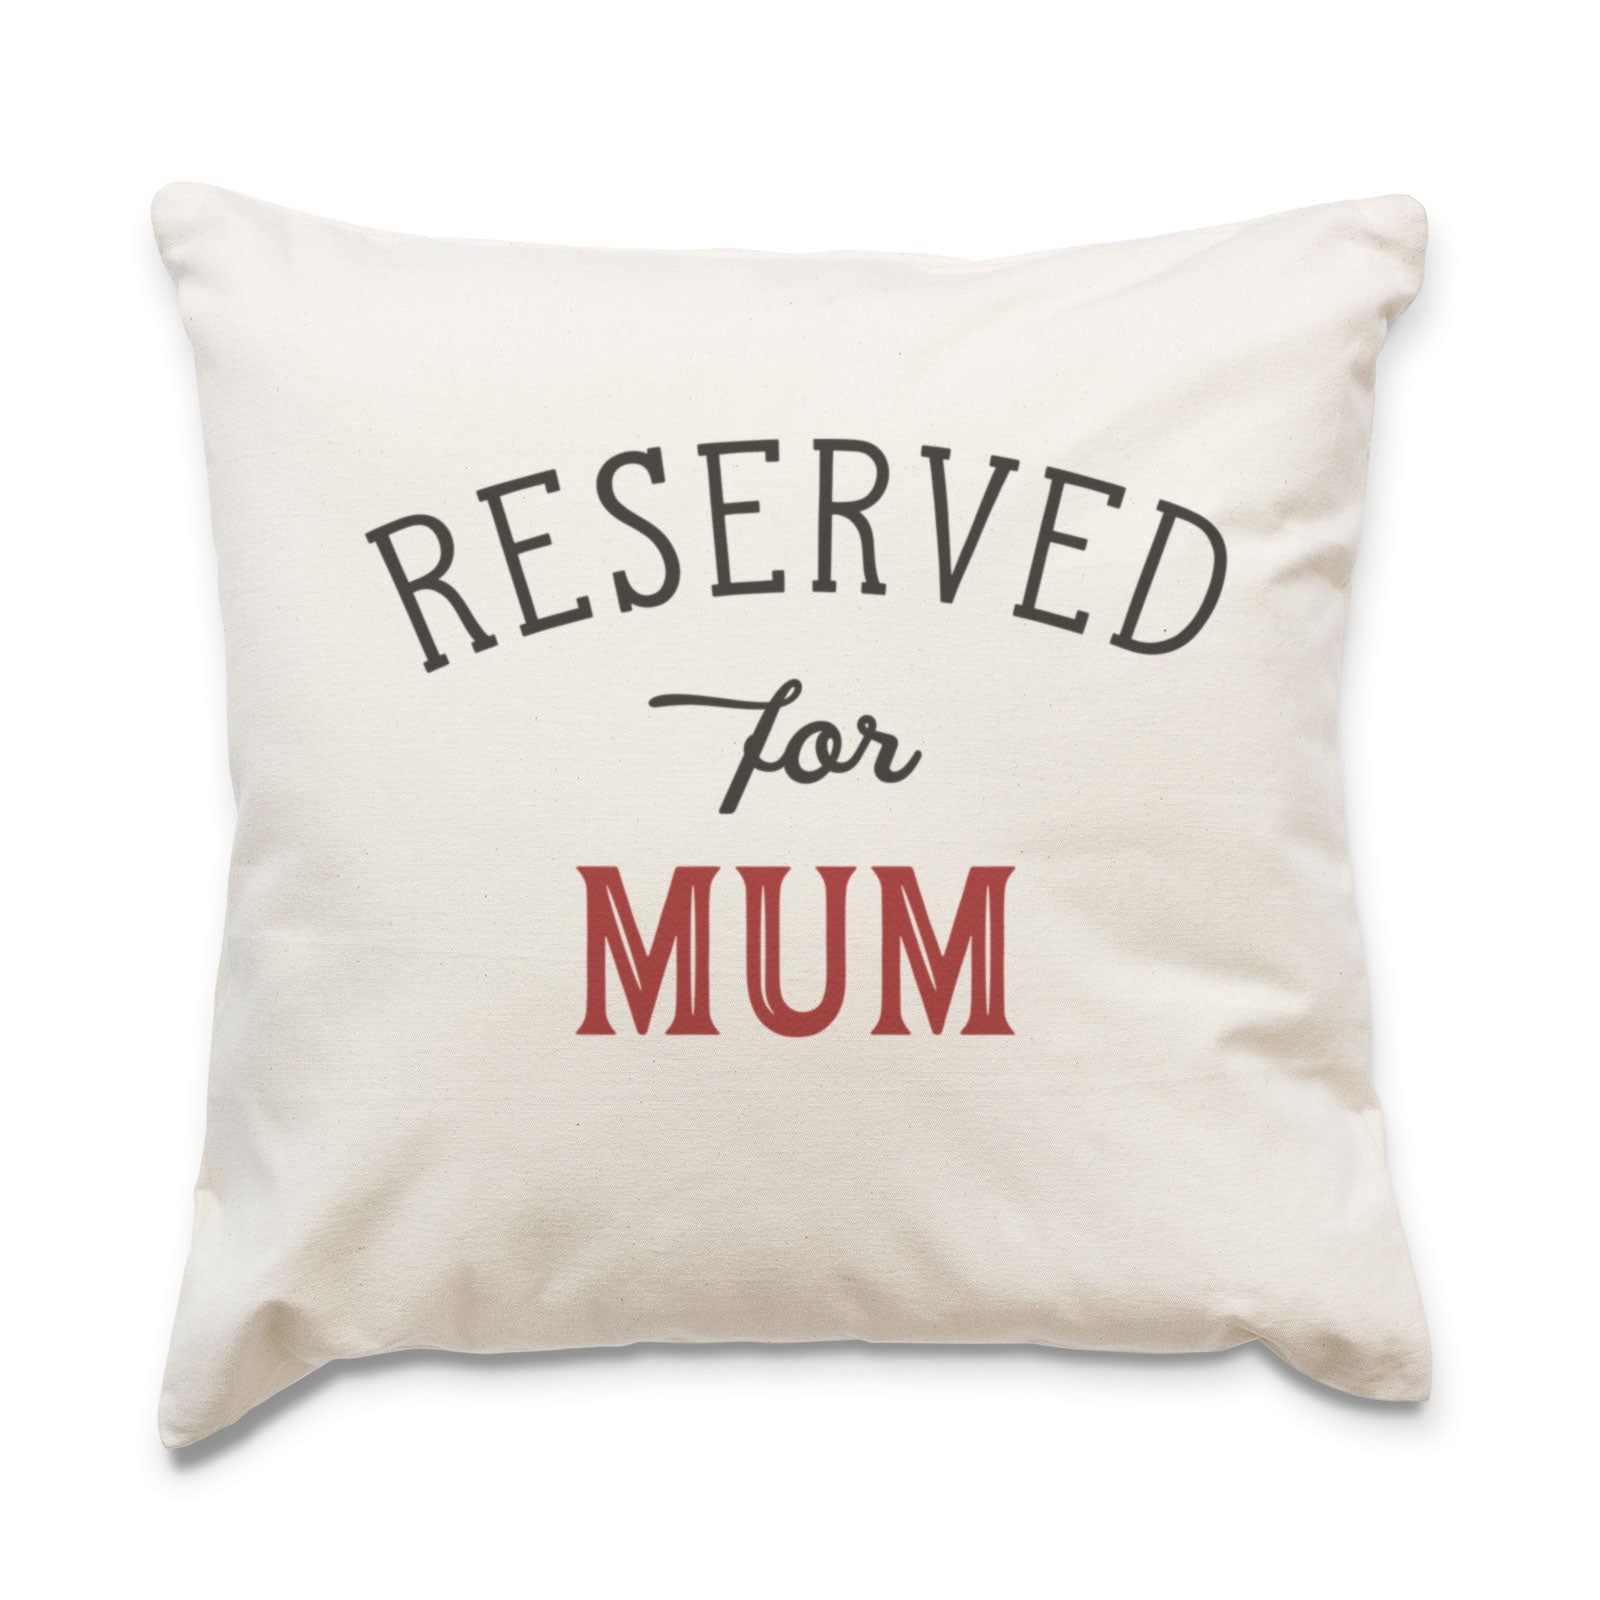 Reserved for Mum Cushion Cover